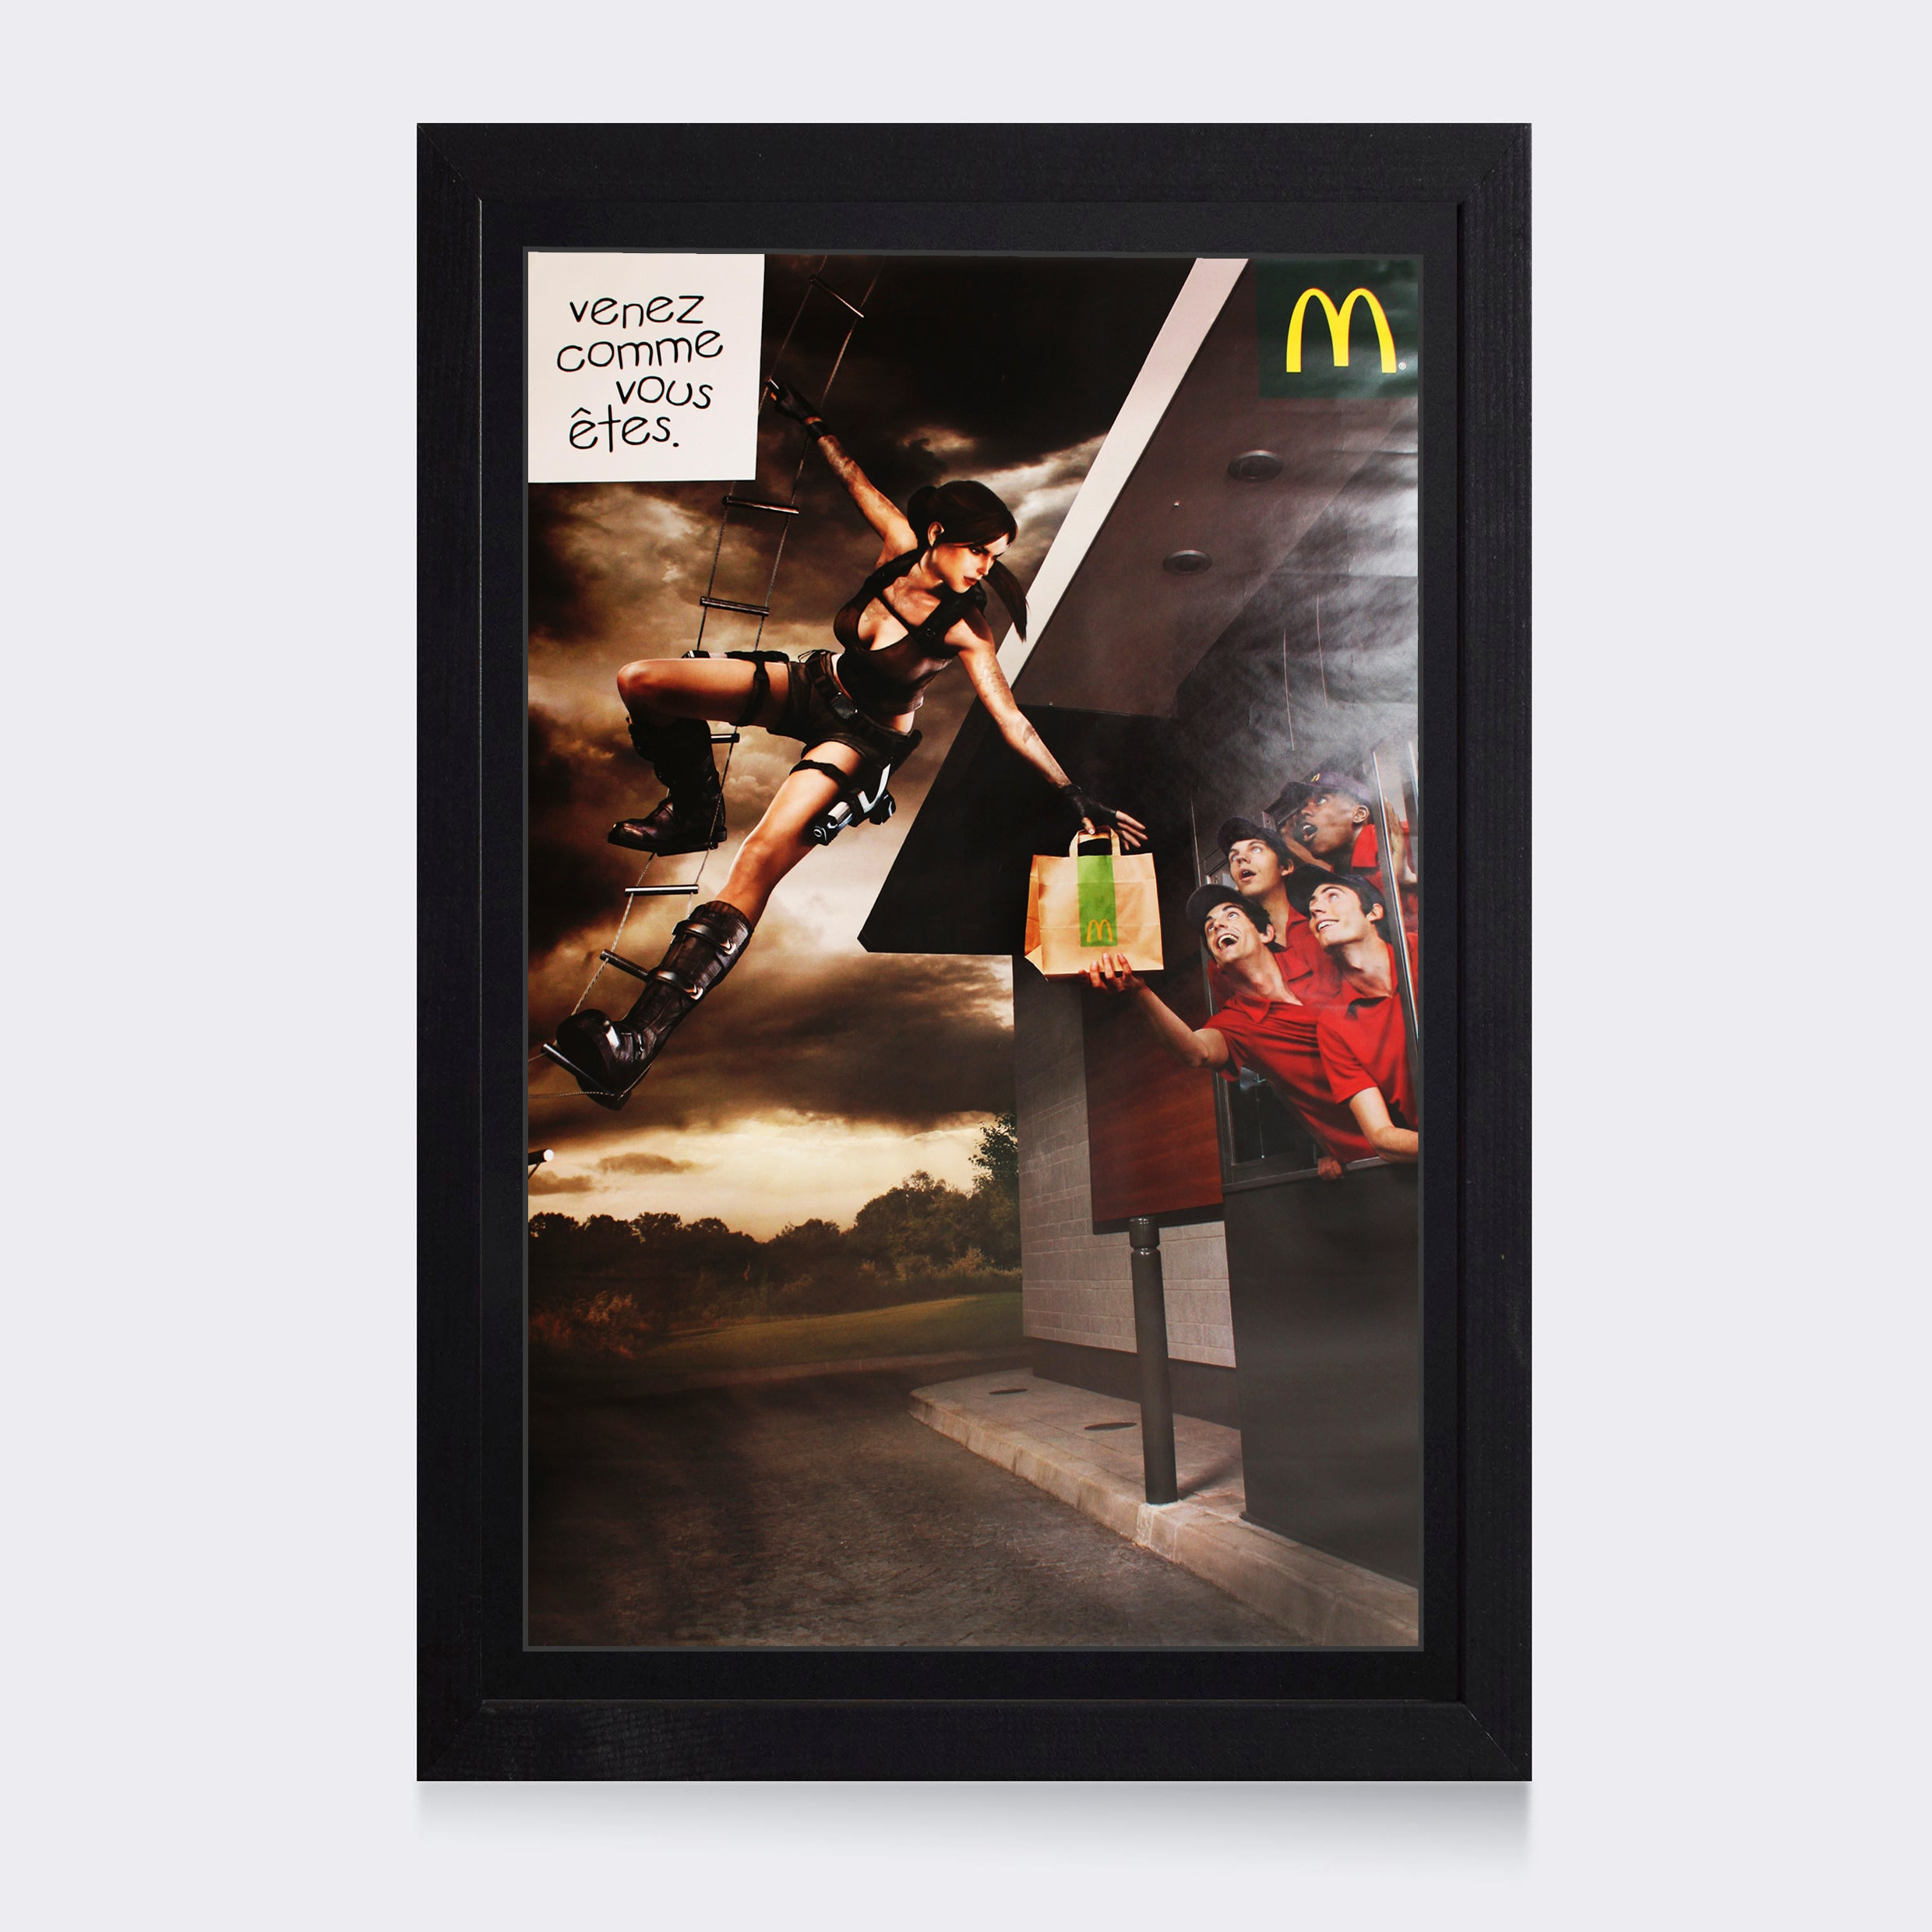 A framed poster for a French McDonald's ad featuring Lara Croft from Tomb Raider: Underworld